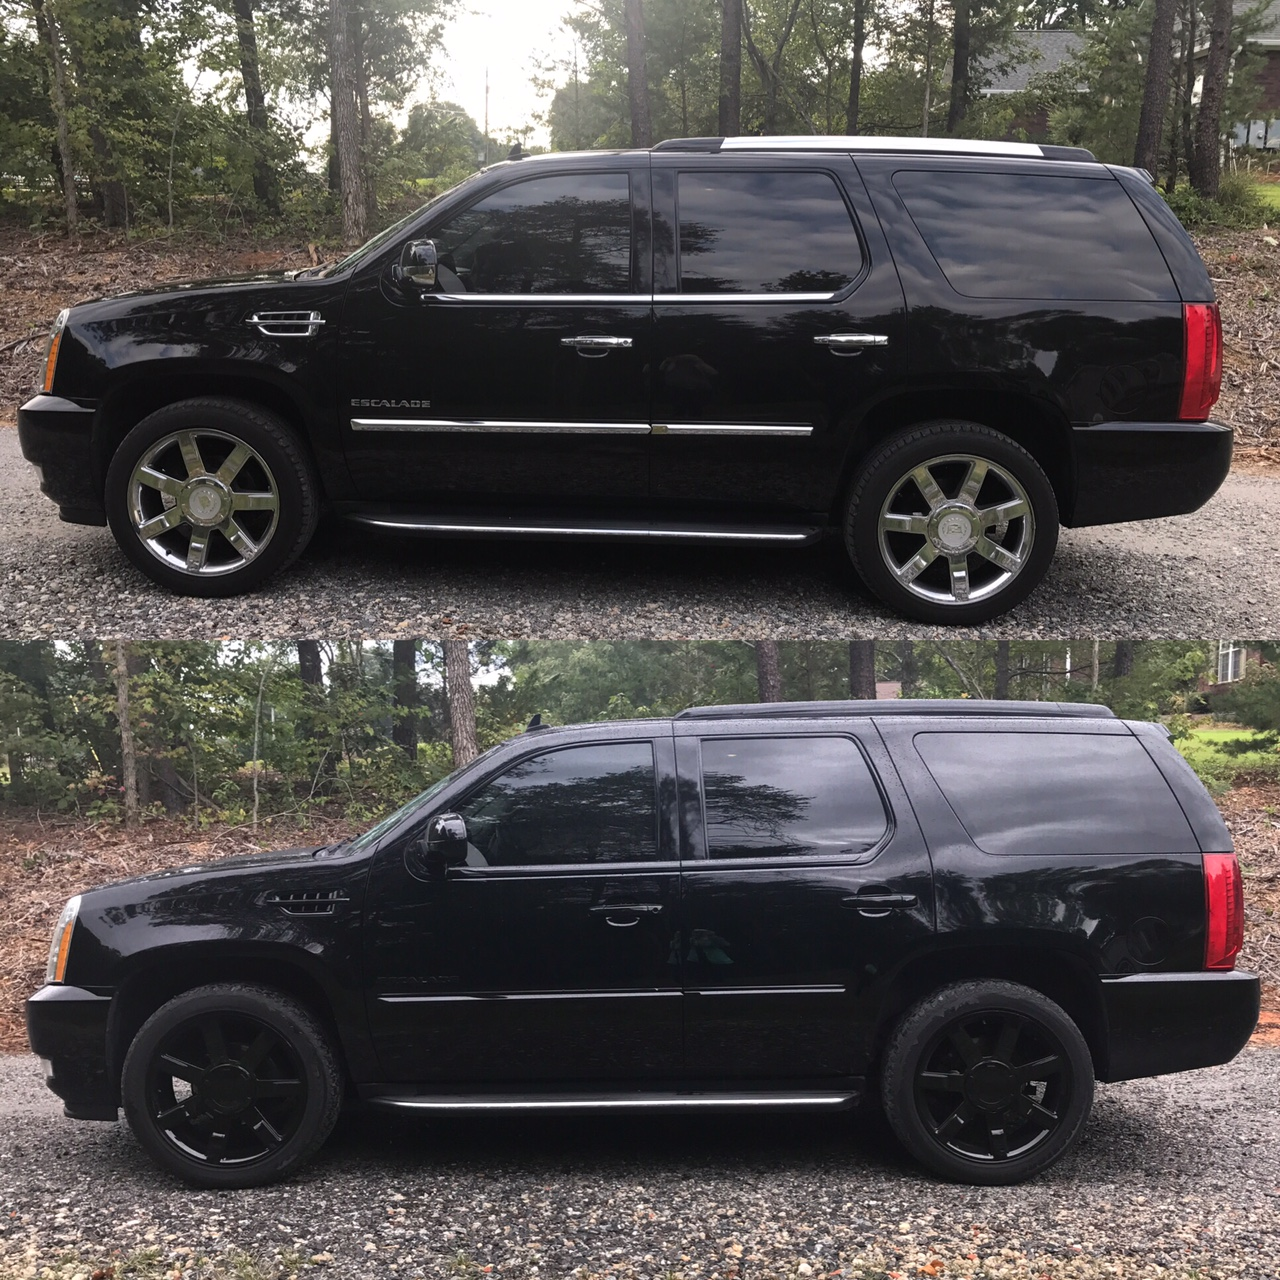 Blacked Out Cadillac Escalade